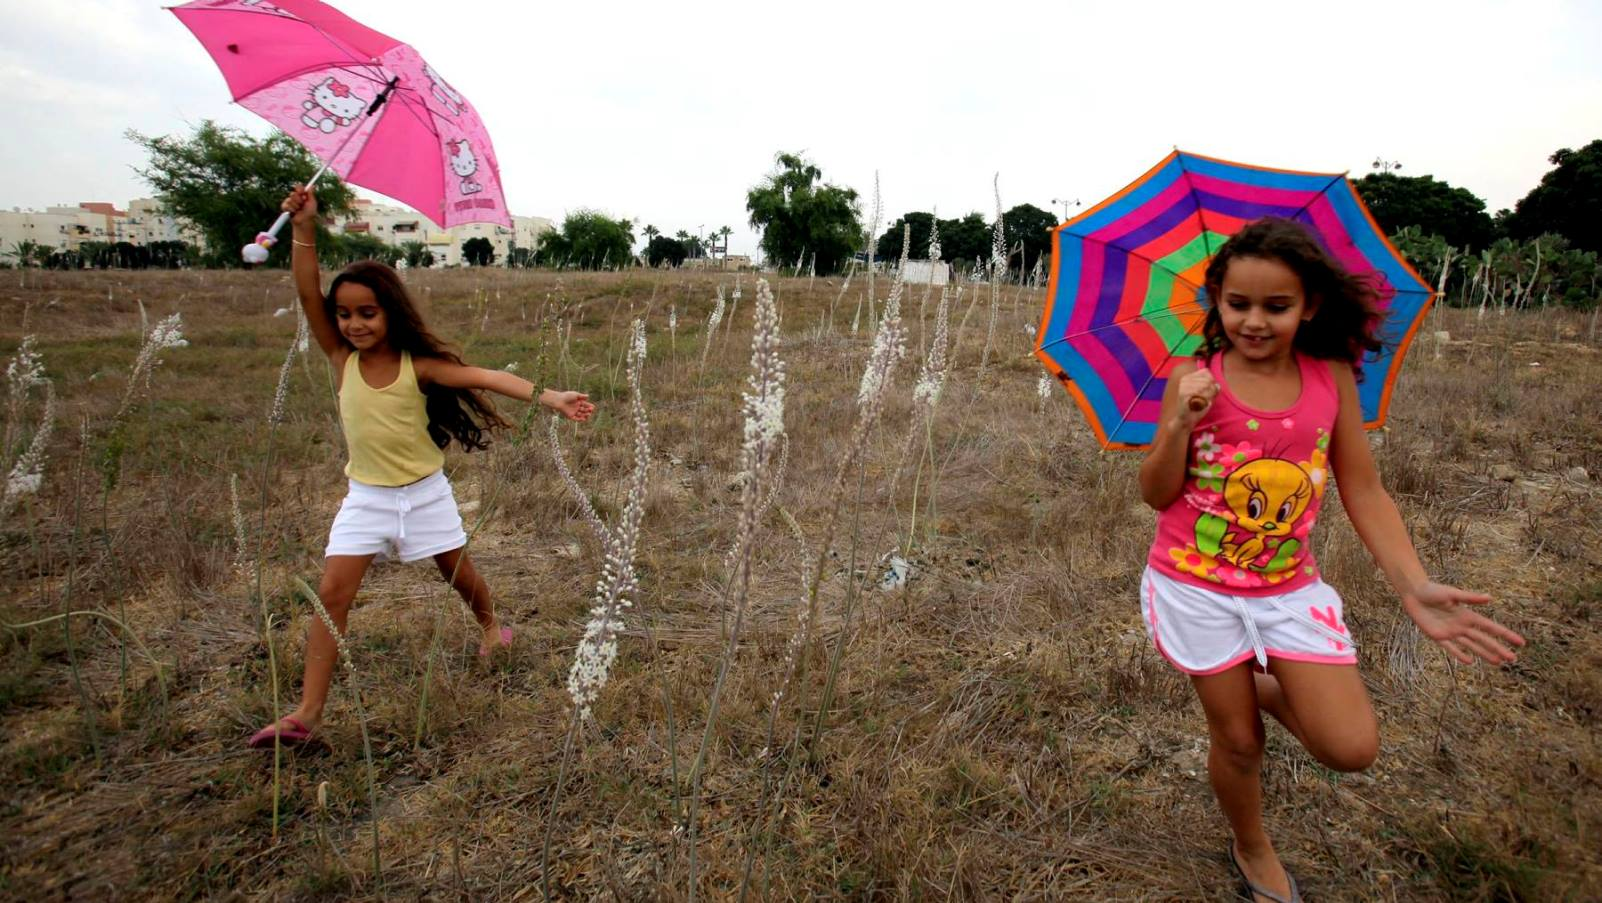 Children in Ashkelon celebrating the first rain of the season. Photo by Edi Israel/FLASH90